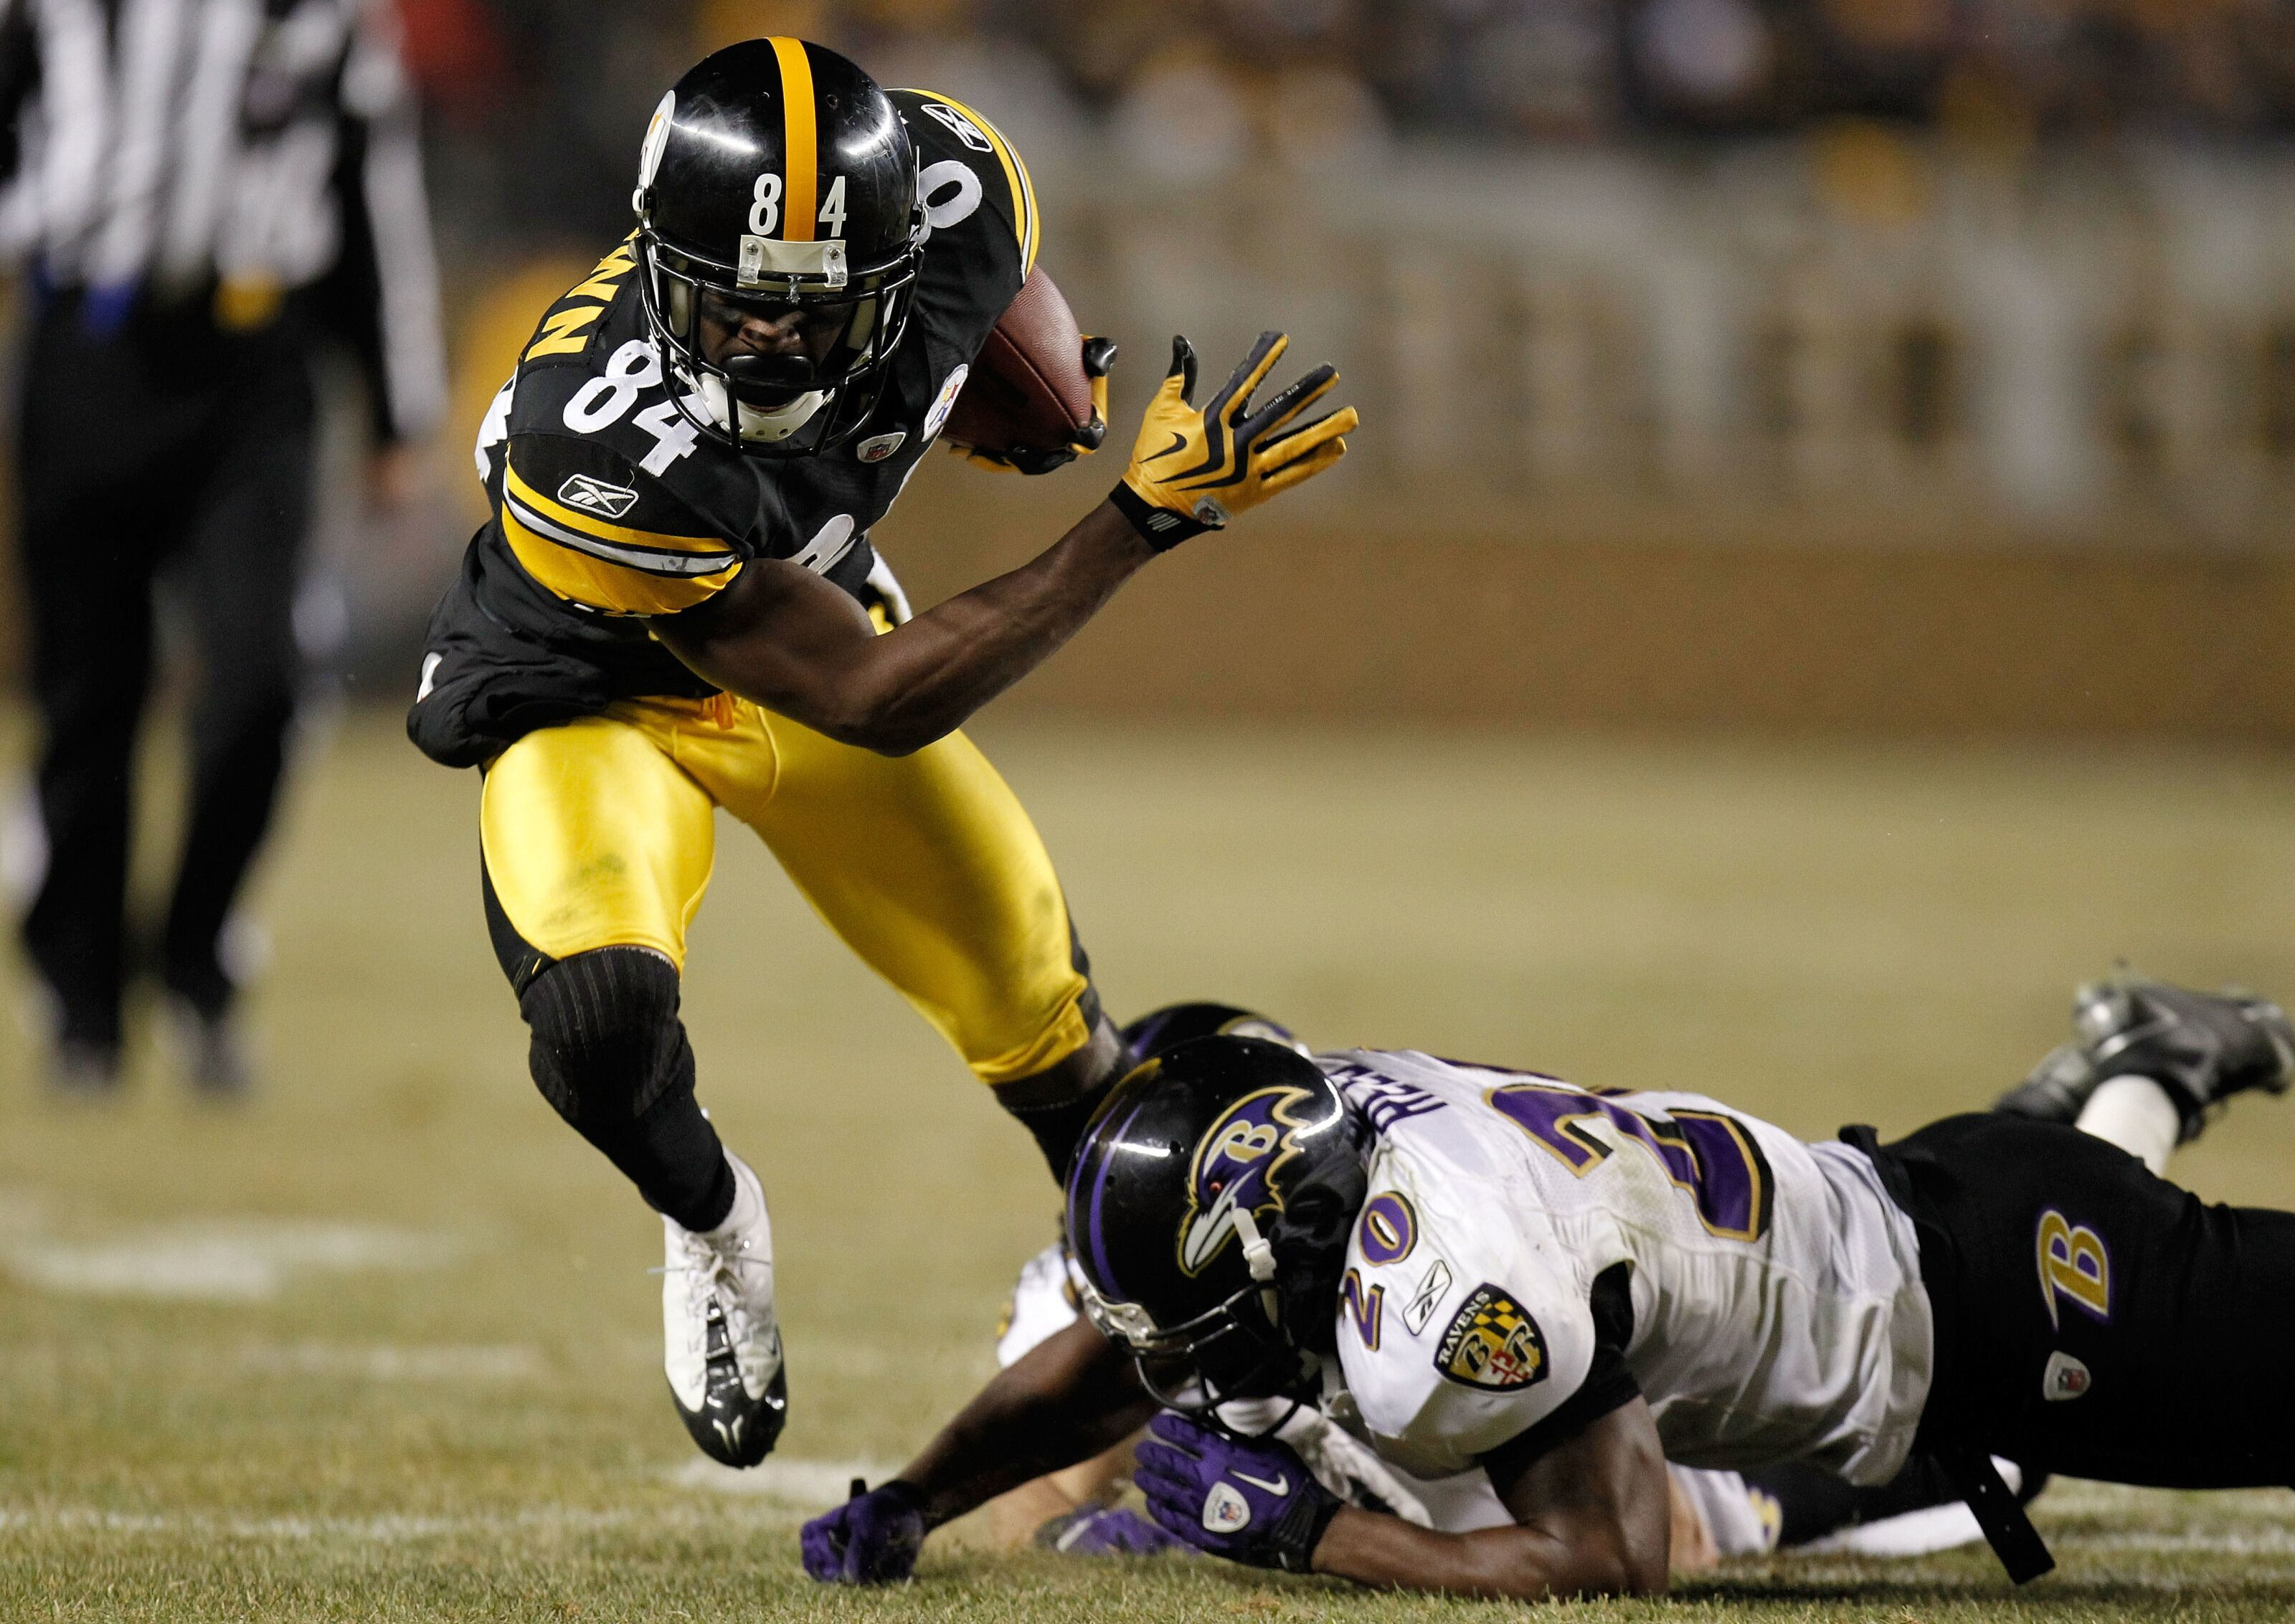 Pittsburgh Steelers: Best, worst and realistic 2018 playoff scenarios